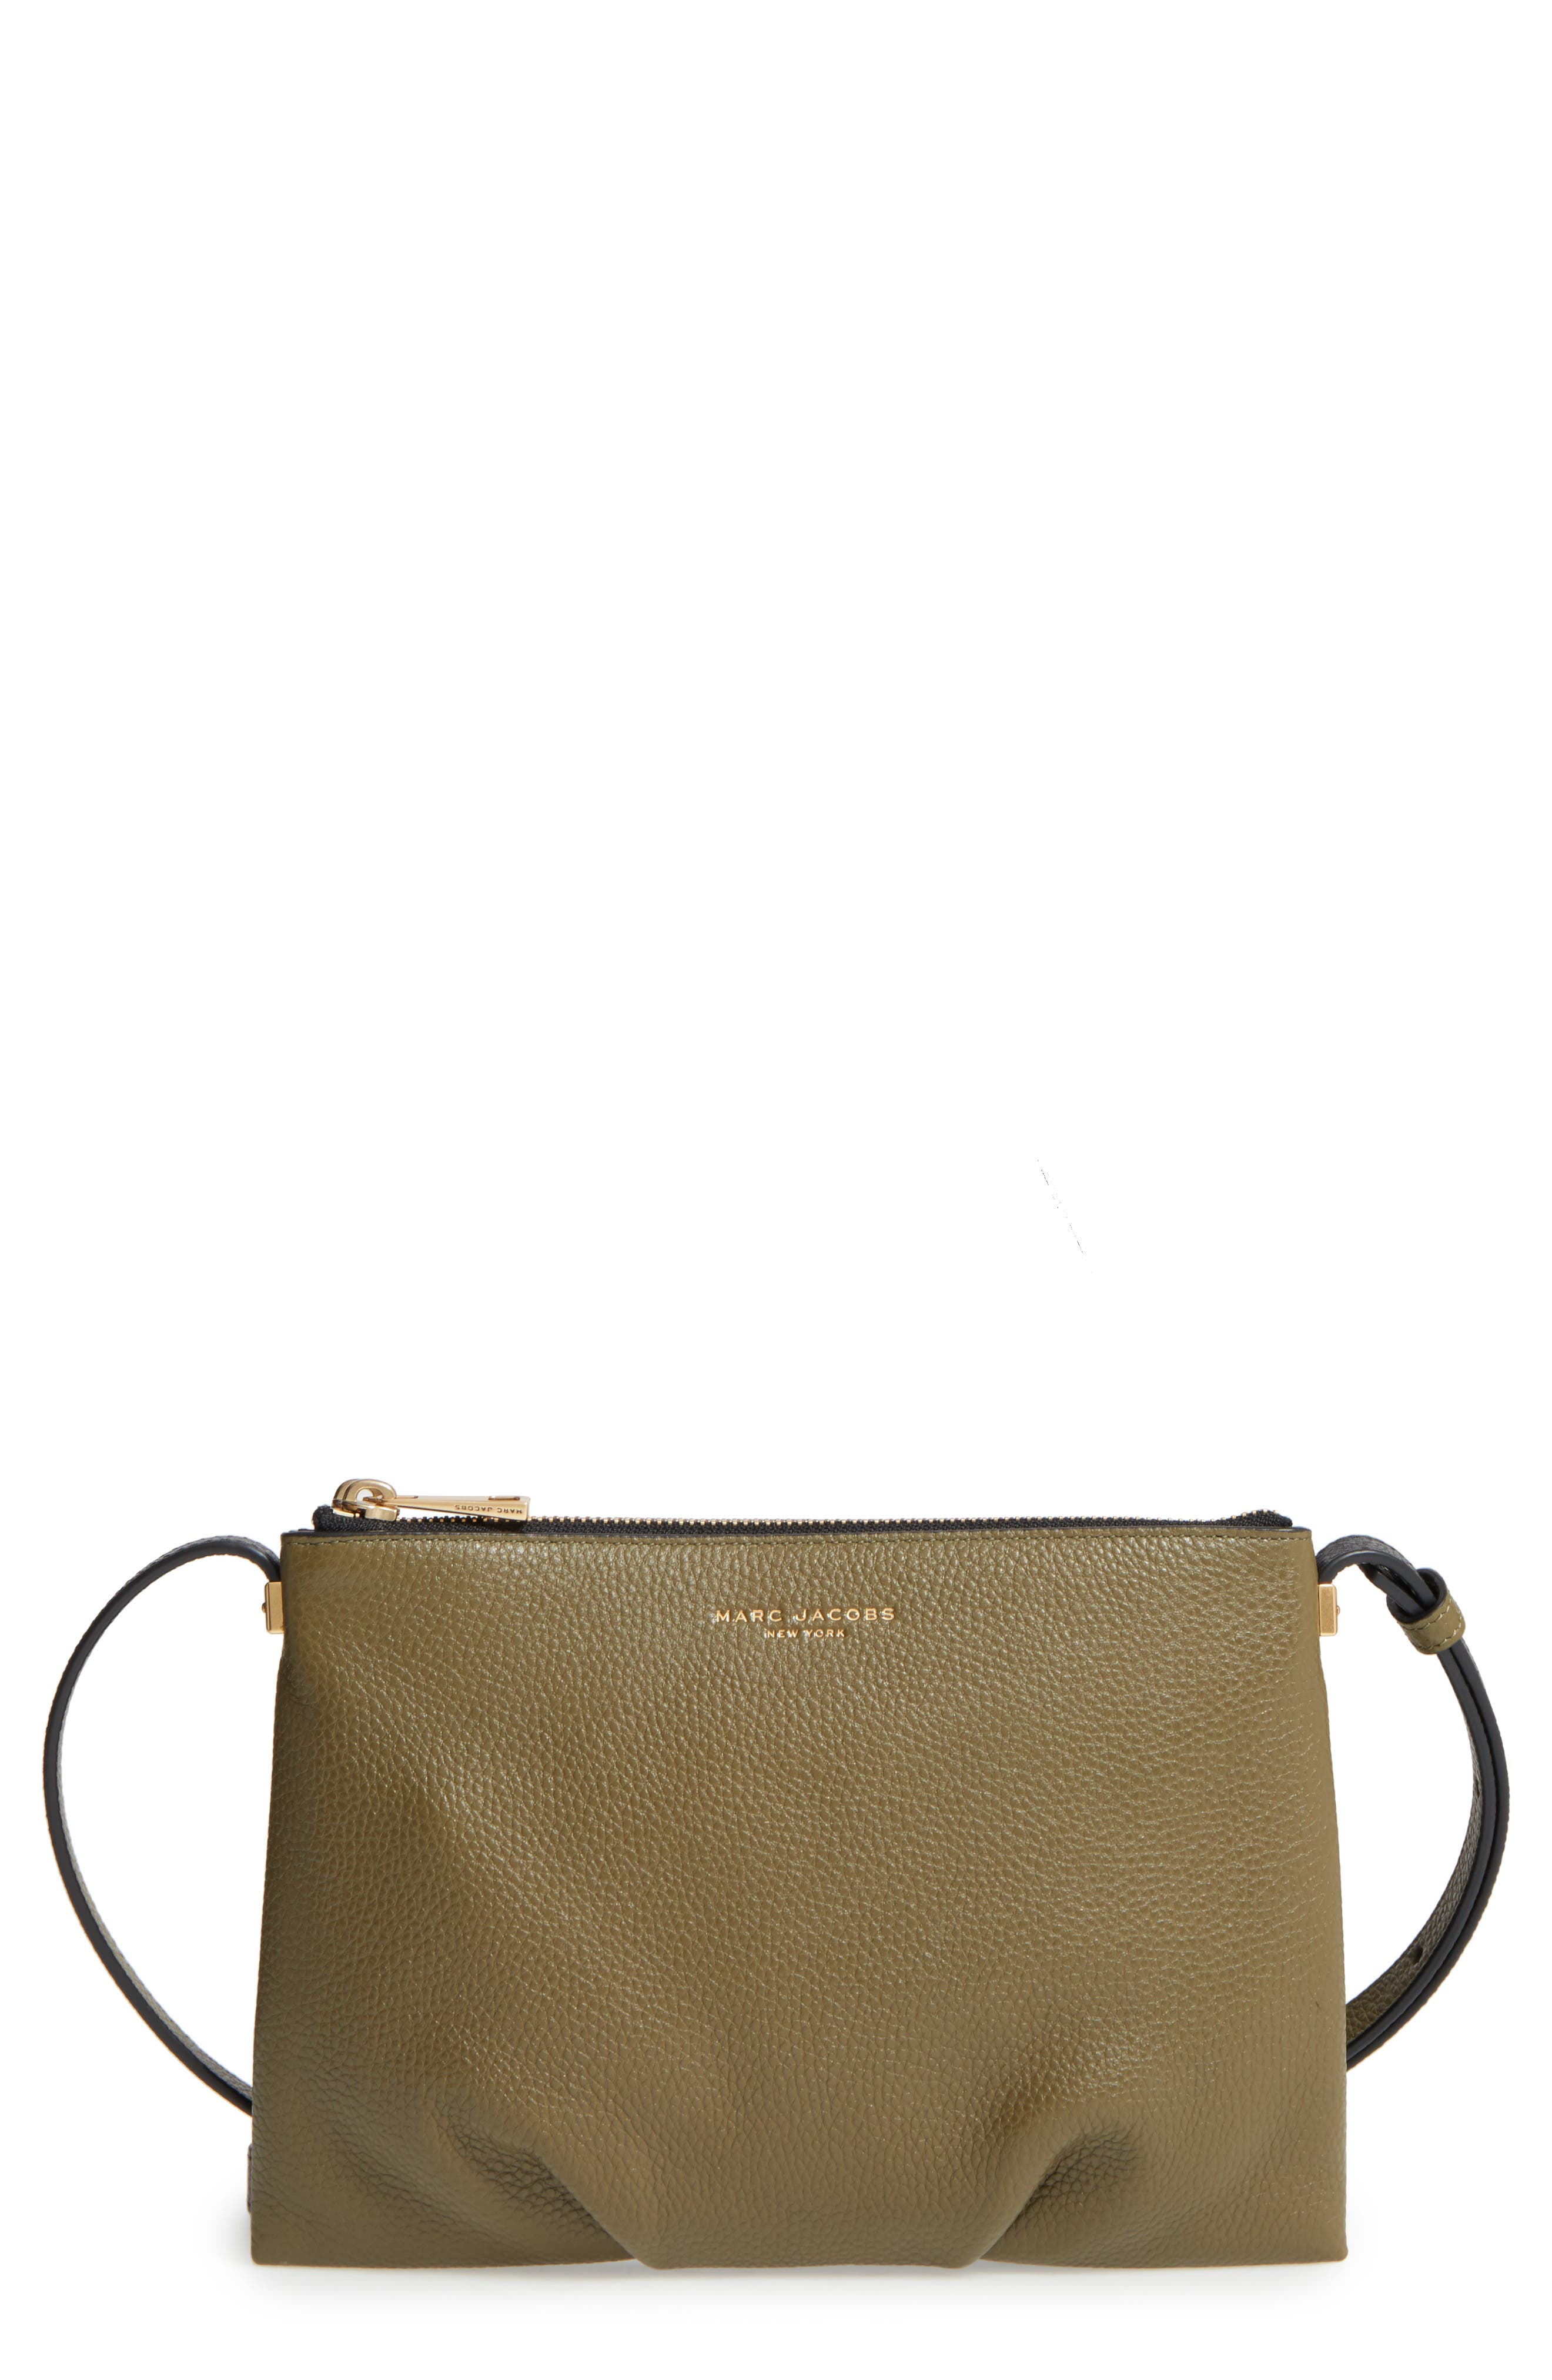 Alternate Image 1 Selected - MARC JACOBS The Standard Leather Crossbody Bag